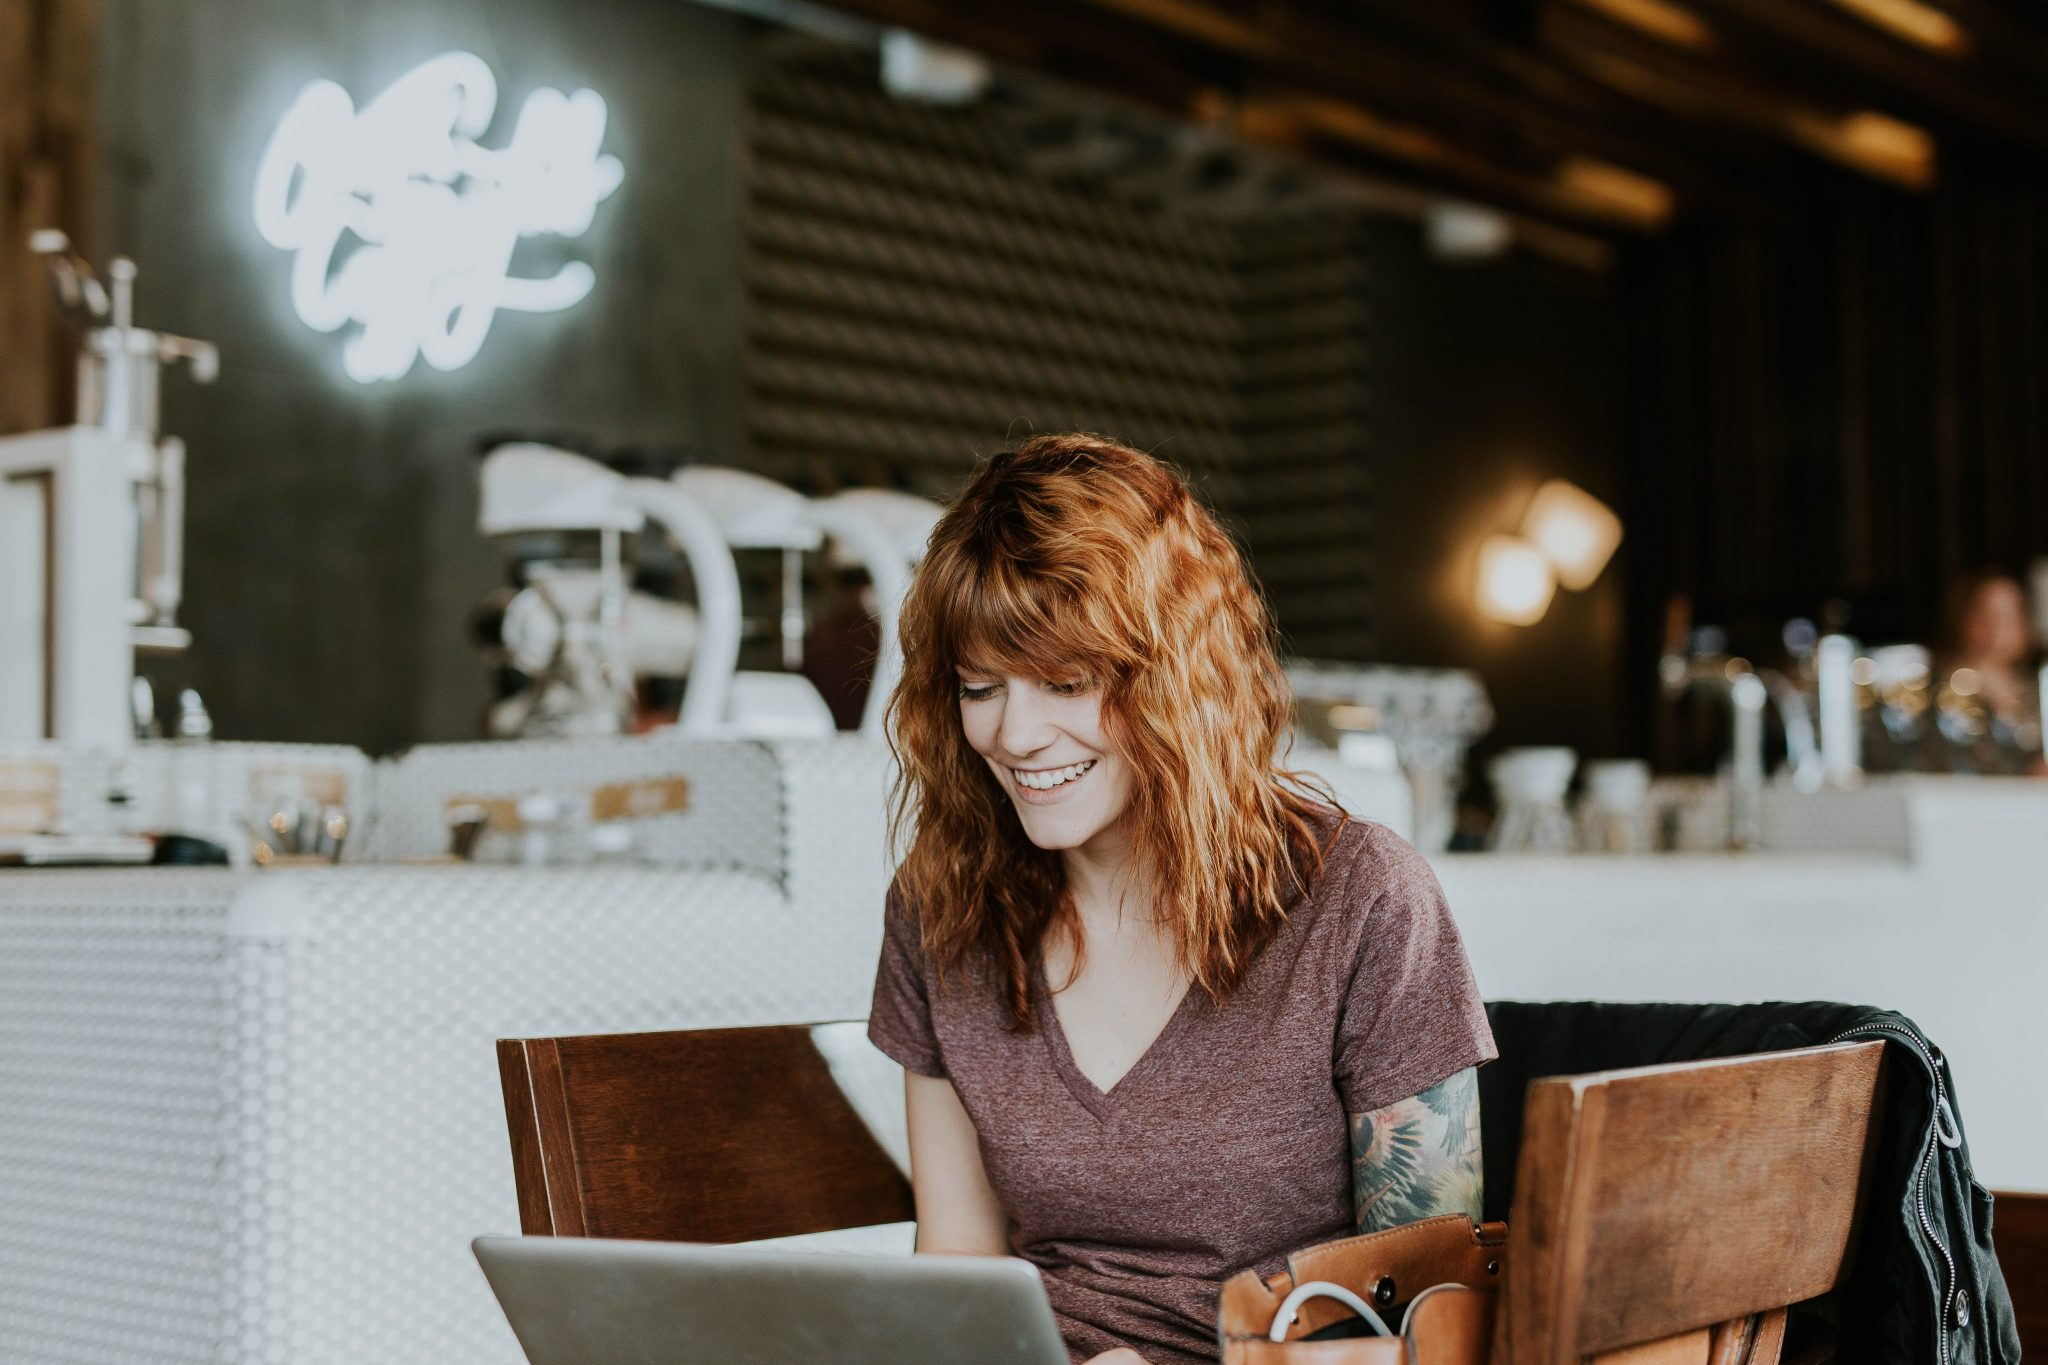 A customer with red hair sitting at a table in a restuaurant with her laptop answering restaurant survey questions after her meal.